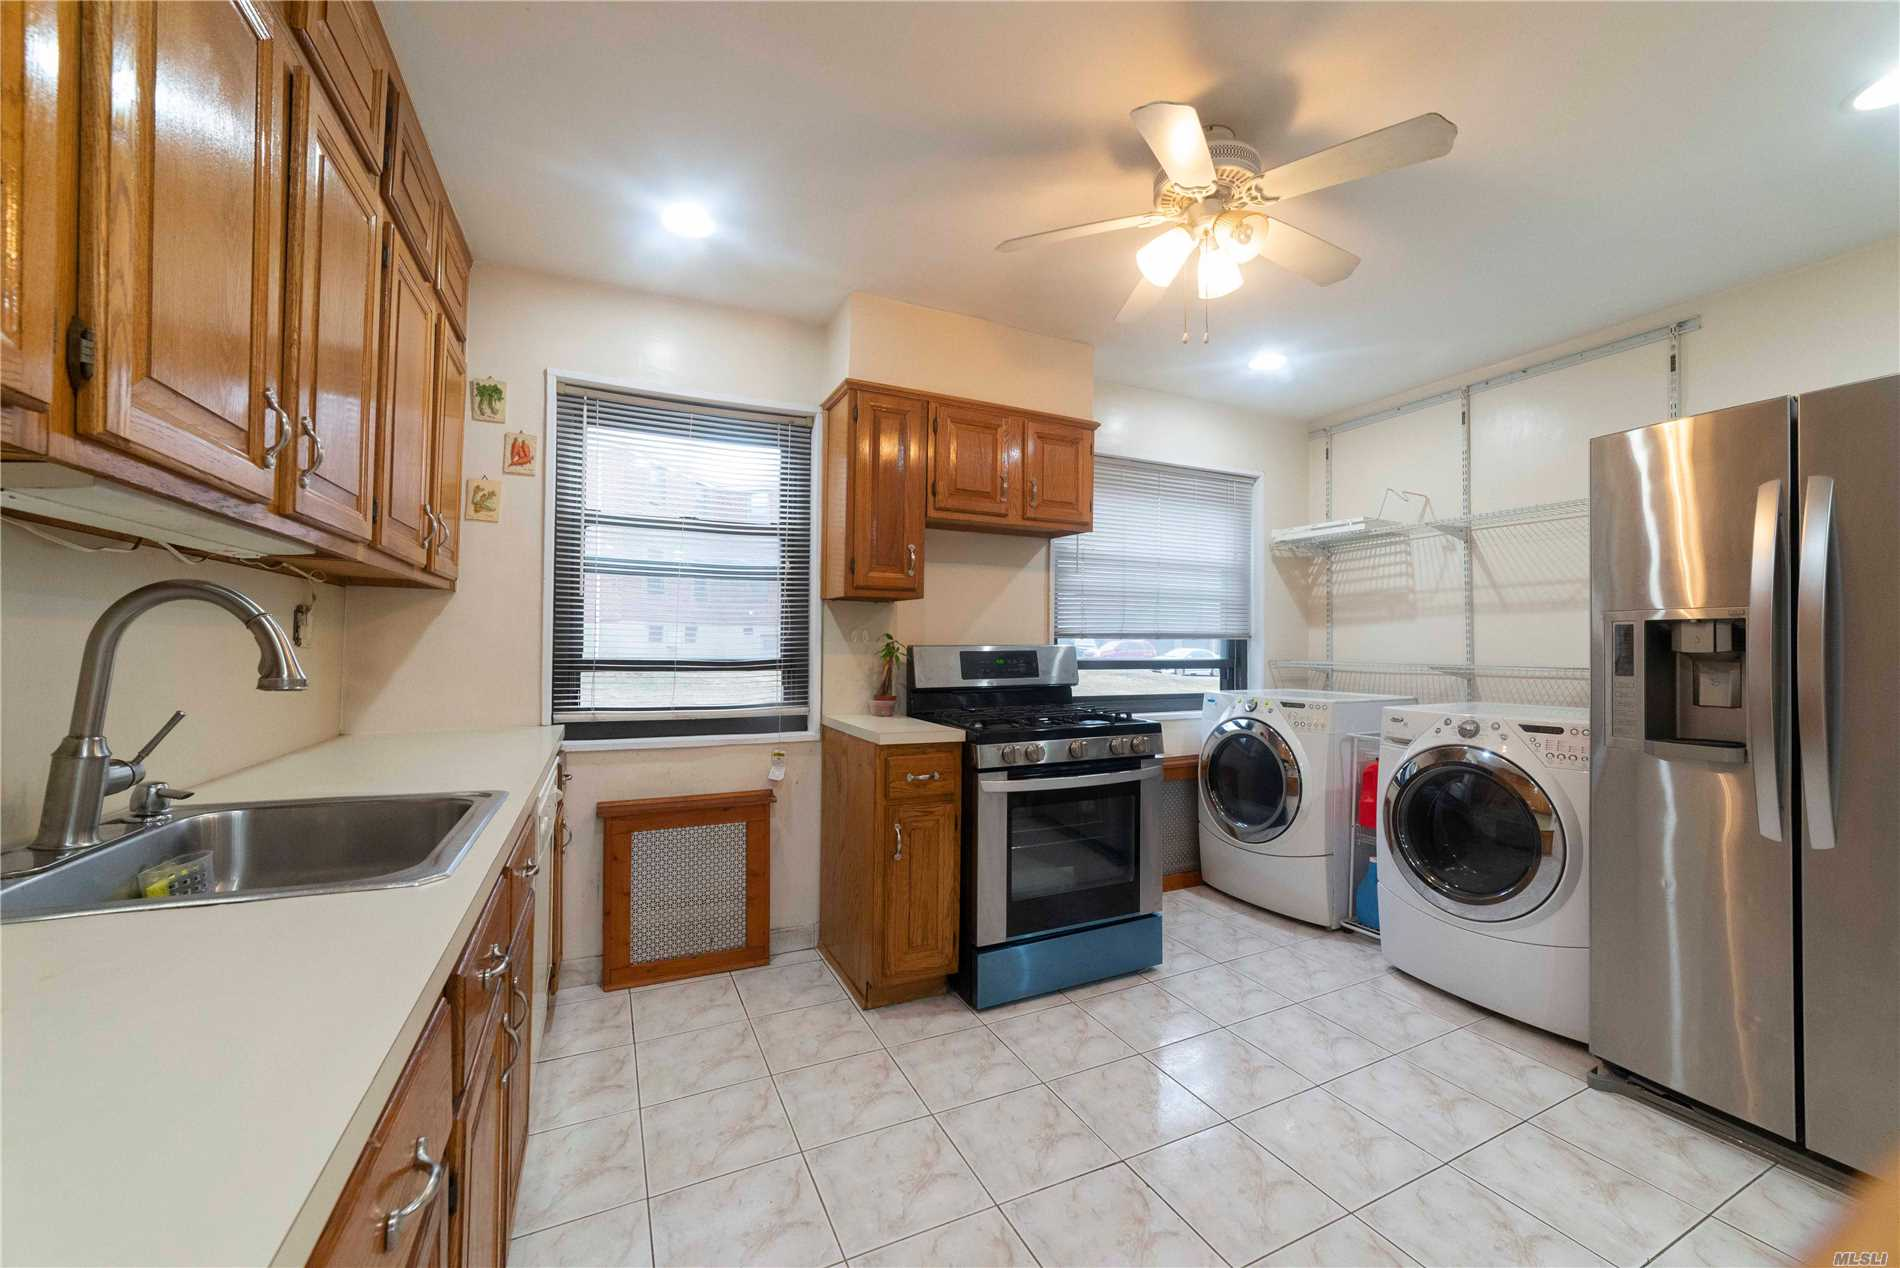 Bright Corner Unit- 1 Fl, Updated Kit, Bath.Wash/Dryer In Kit, New Ss Stove, Nice Sized Rooms, Includes 2 Wall Mount Flat Screen Tv's.Lr: 46 W Sound System, Br 32. 1 Ac In Lr, Hi-Hats Throughout.Maint Inclu Elec, Heat, Gas, Water, Sewer, Taxes. Easy Street Pkg. Quiet Area. One Block To Ps 209 And Jhs 194.  Income Requirements: $44, 800 Plus 12 Months Mortgage/Debt. No Dogs, 2 Cats Ok, No Subletting. X Buses To Nyc (Qm2 & Qm20) And Q16 All On The Corner. Major Highways Nearby And Close To Shopping.